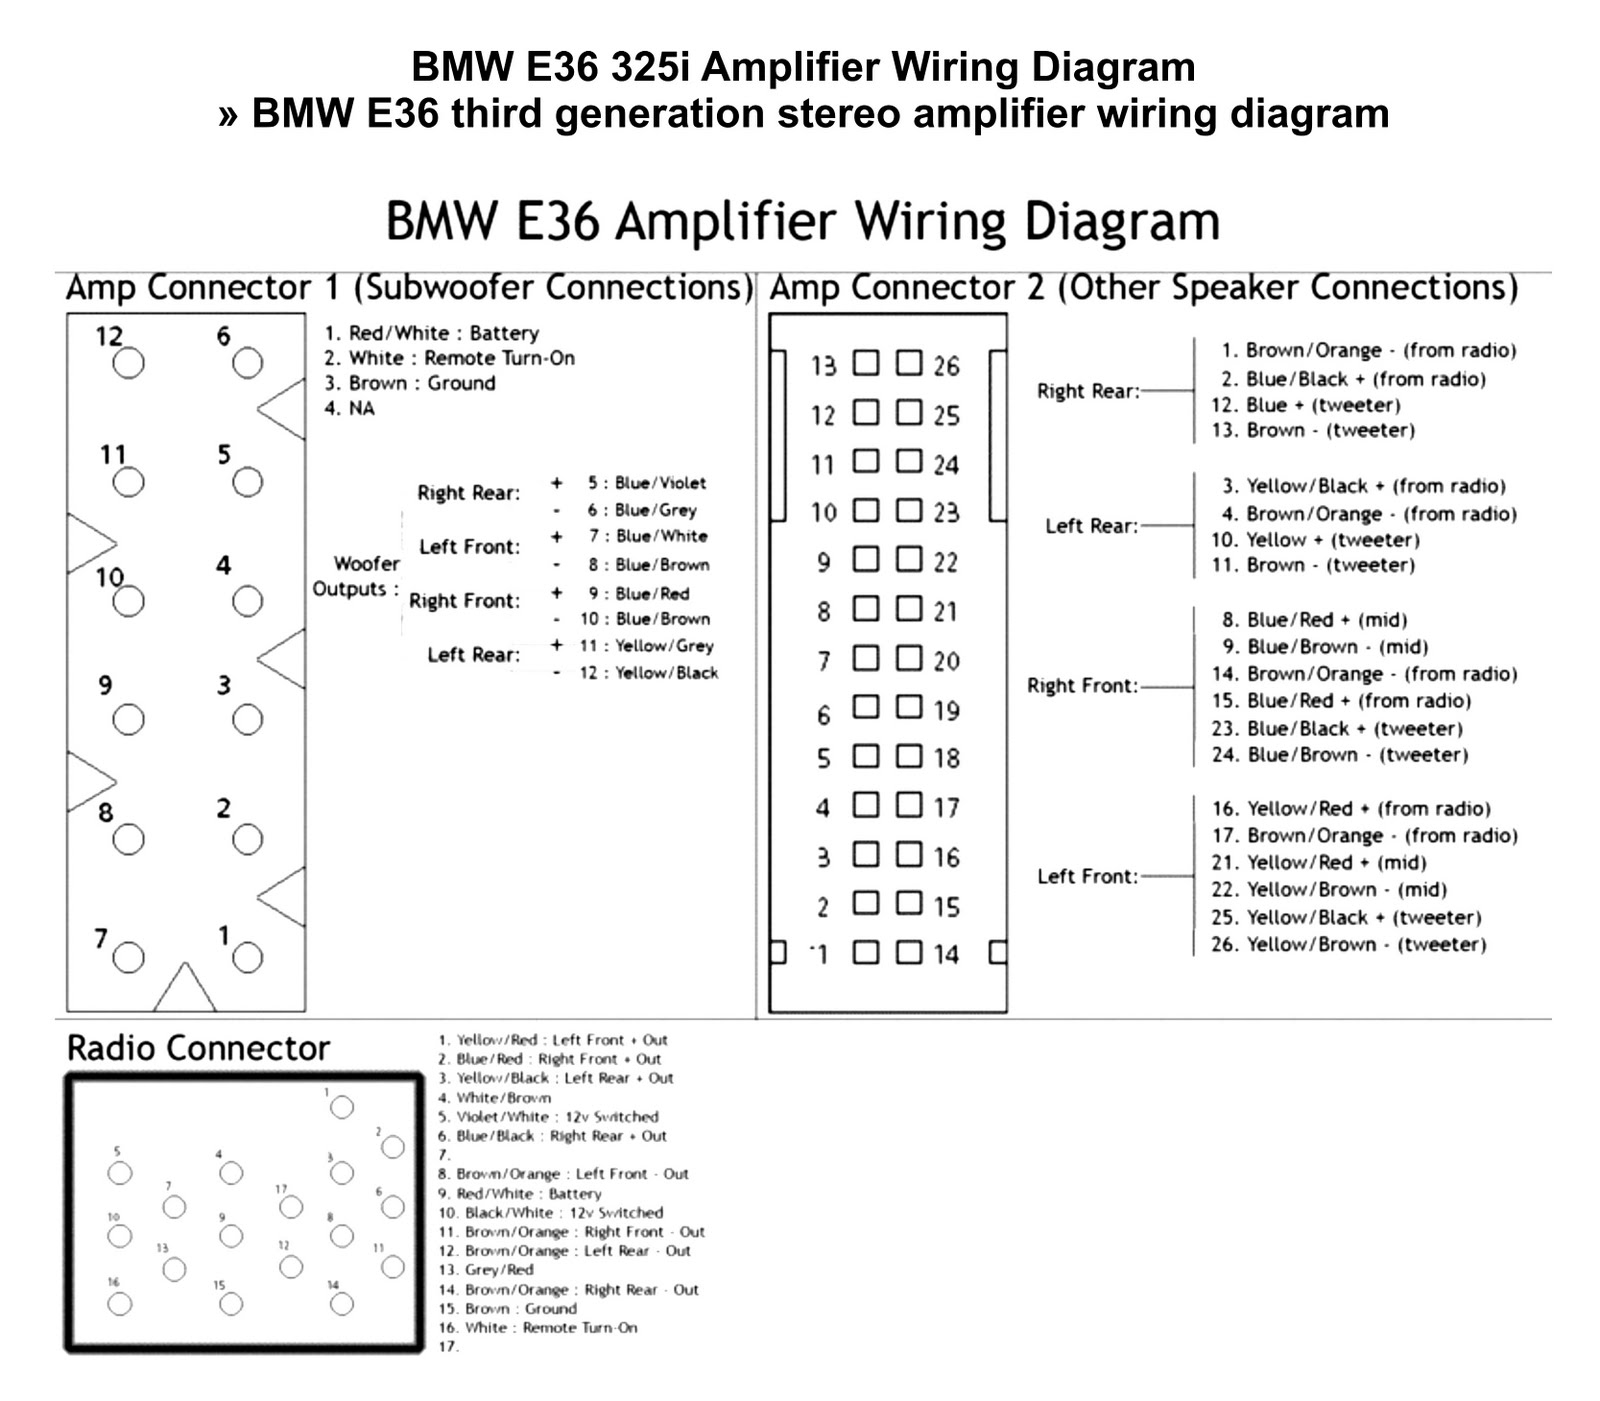 Glamorous BMW E46 3i Fuse Box Diagram Pictures - Best Image Diagram ...